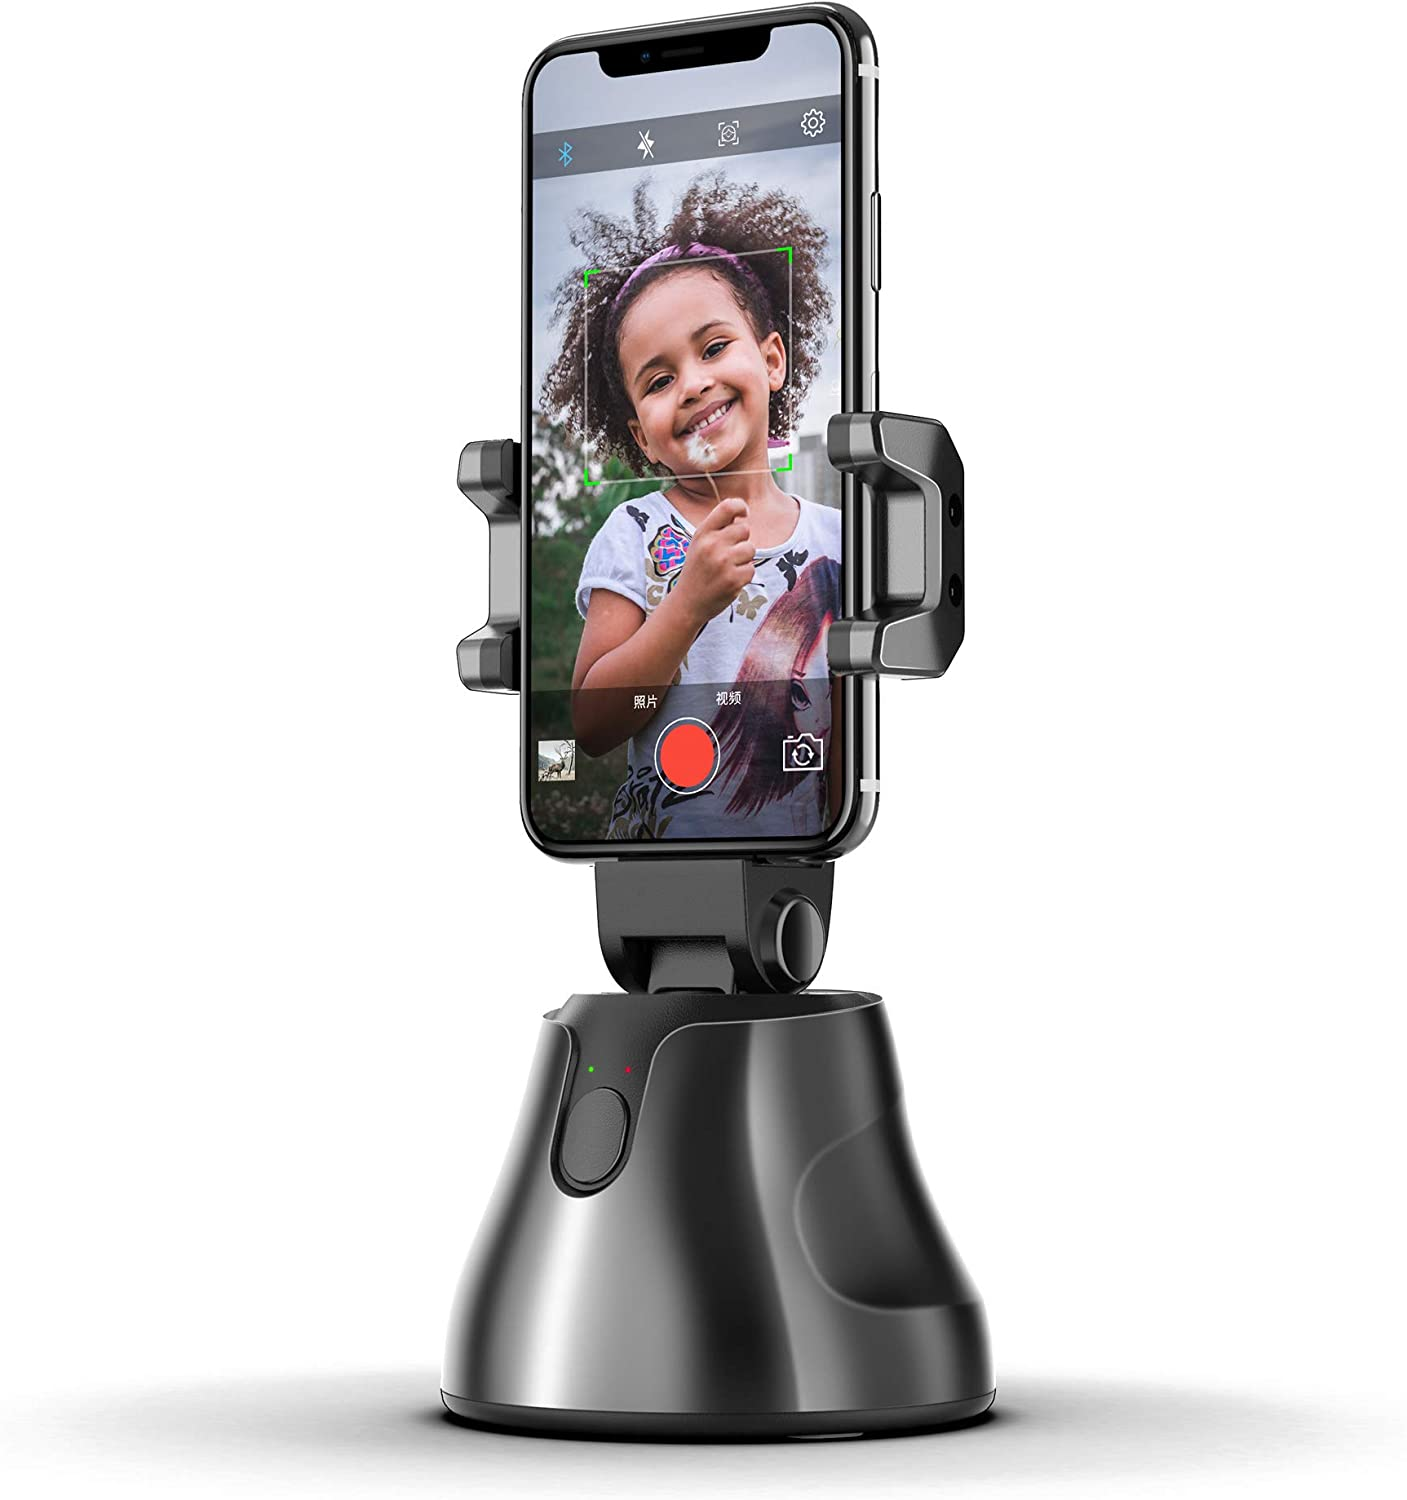 360 Rotation Auto Object Tracking Holder Smart Portable Selfie Stick,All-in-one Smart Following Face and Object Tracking Intelligent shootings Phone Mount,AI Robot Tripod for Phone(Black)